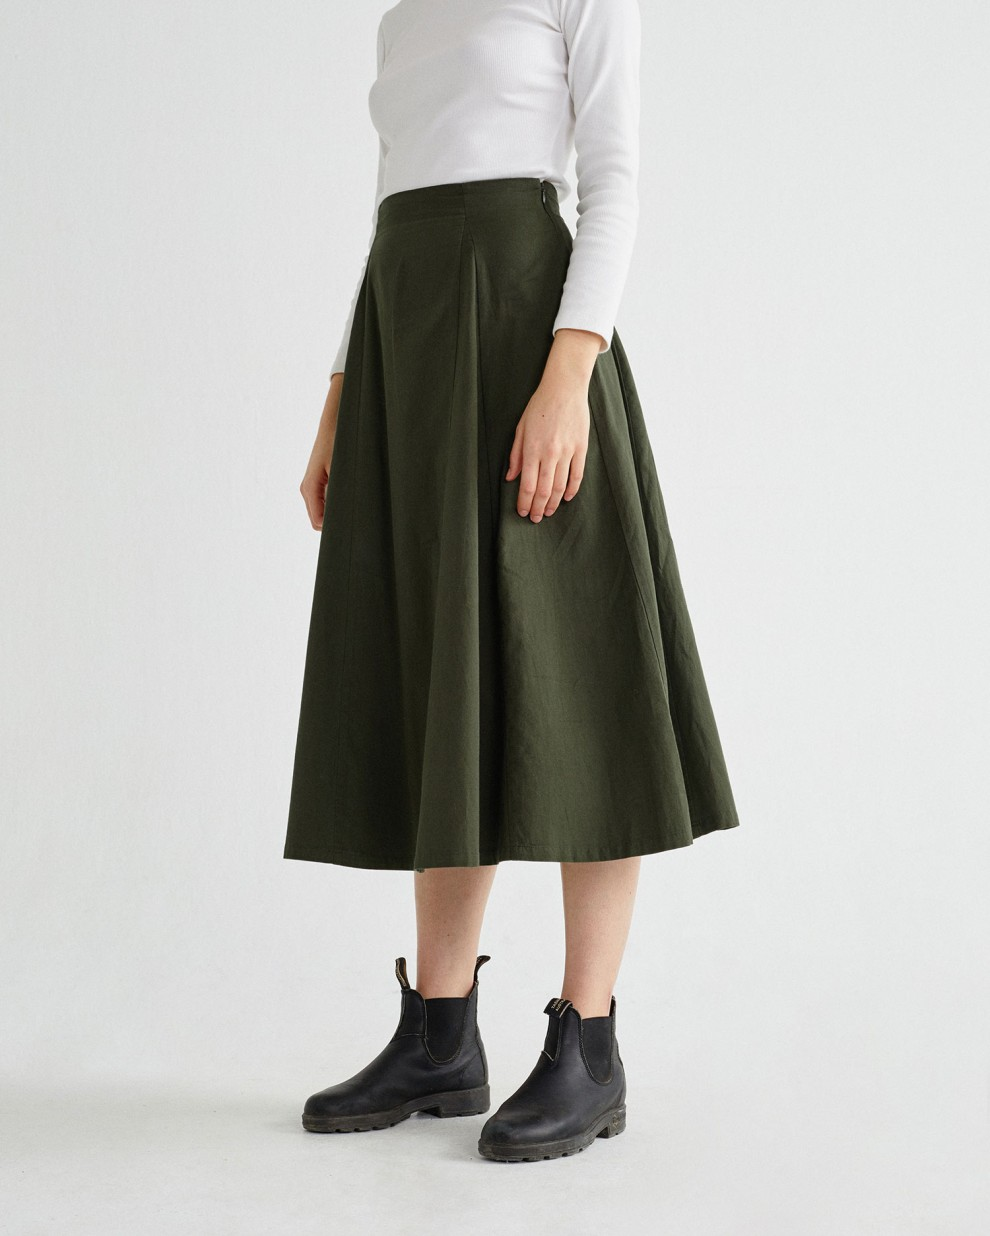 GREEN RATI SKIRT